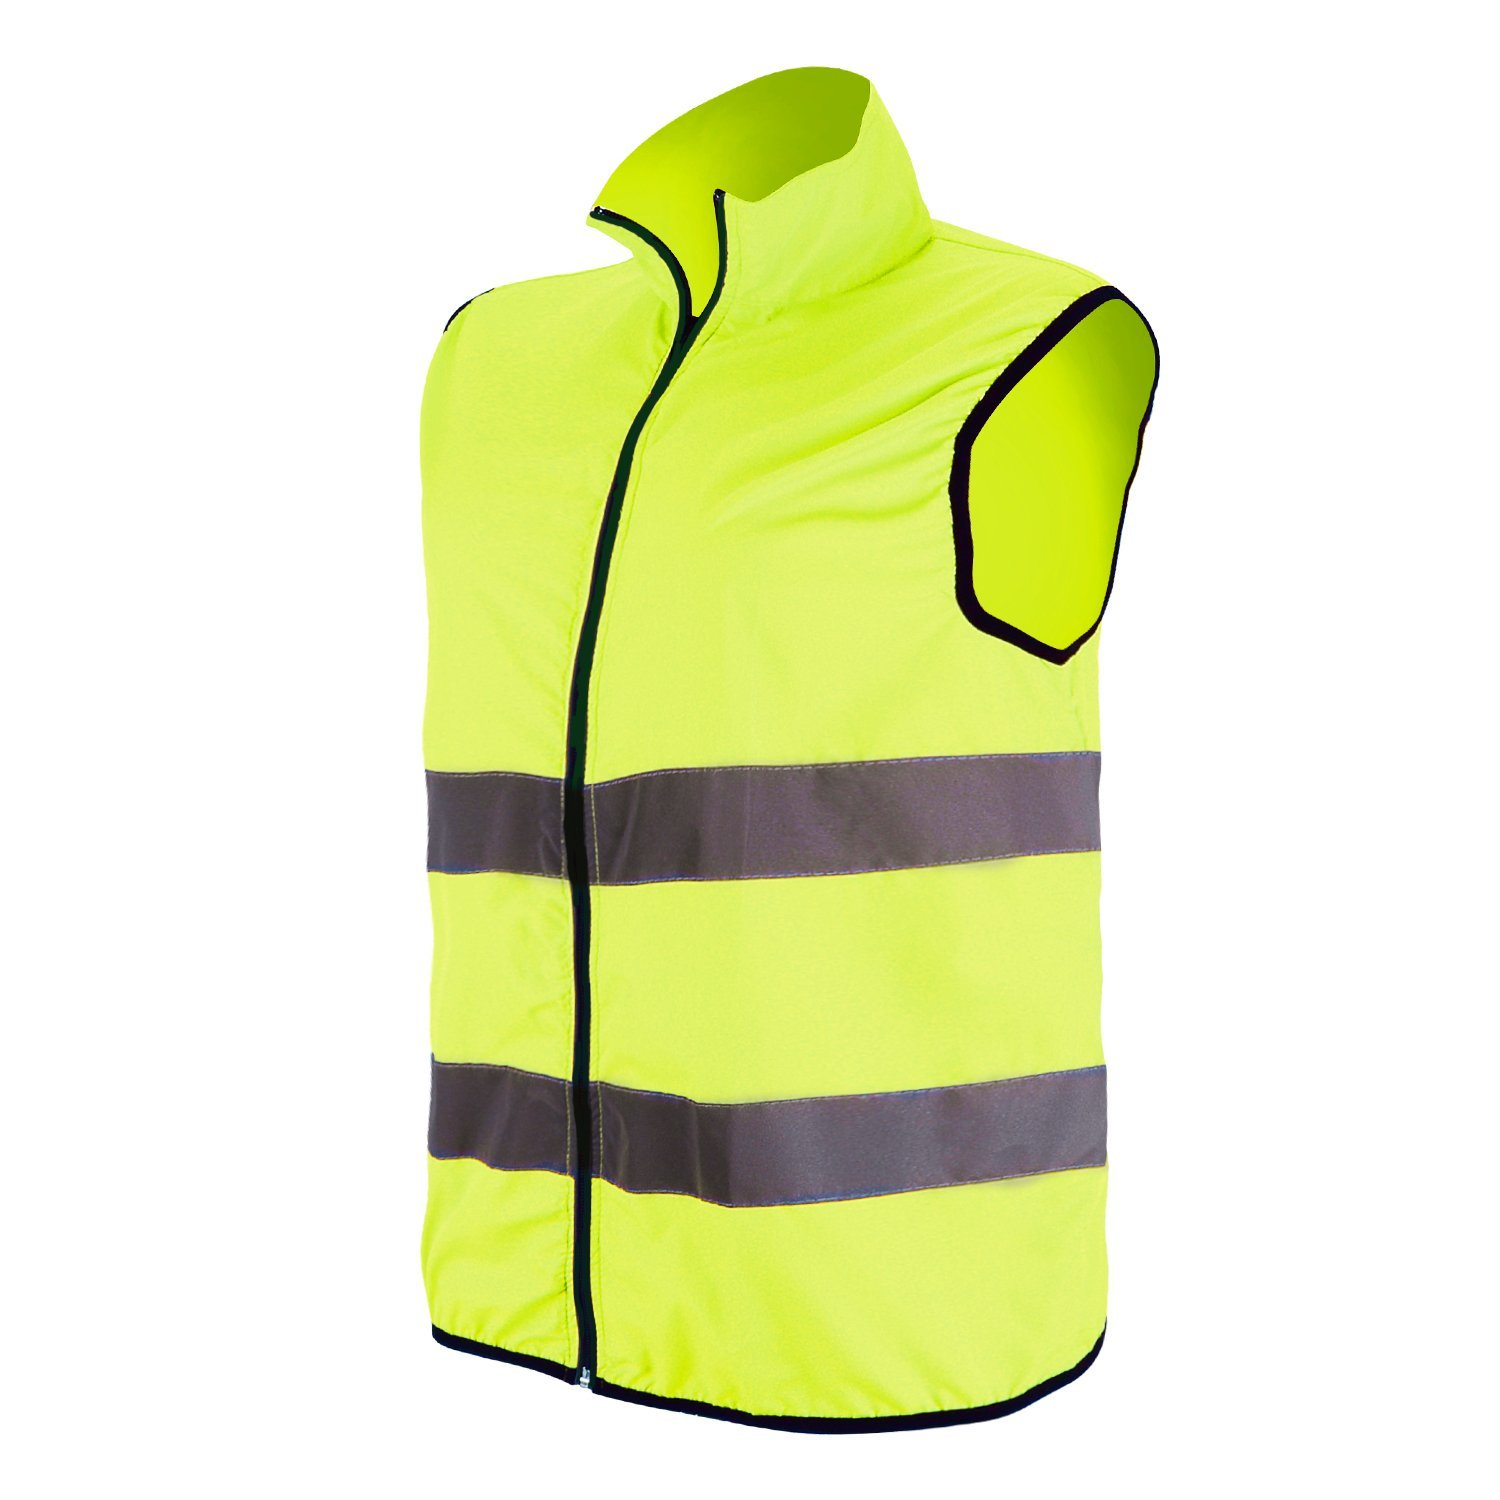 Safety Clothing Pvc Reflective Tape Safety Reflective Vest Highways Sanitation Reflective Mesh Vests Workplace Safety Supplies